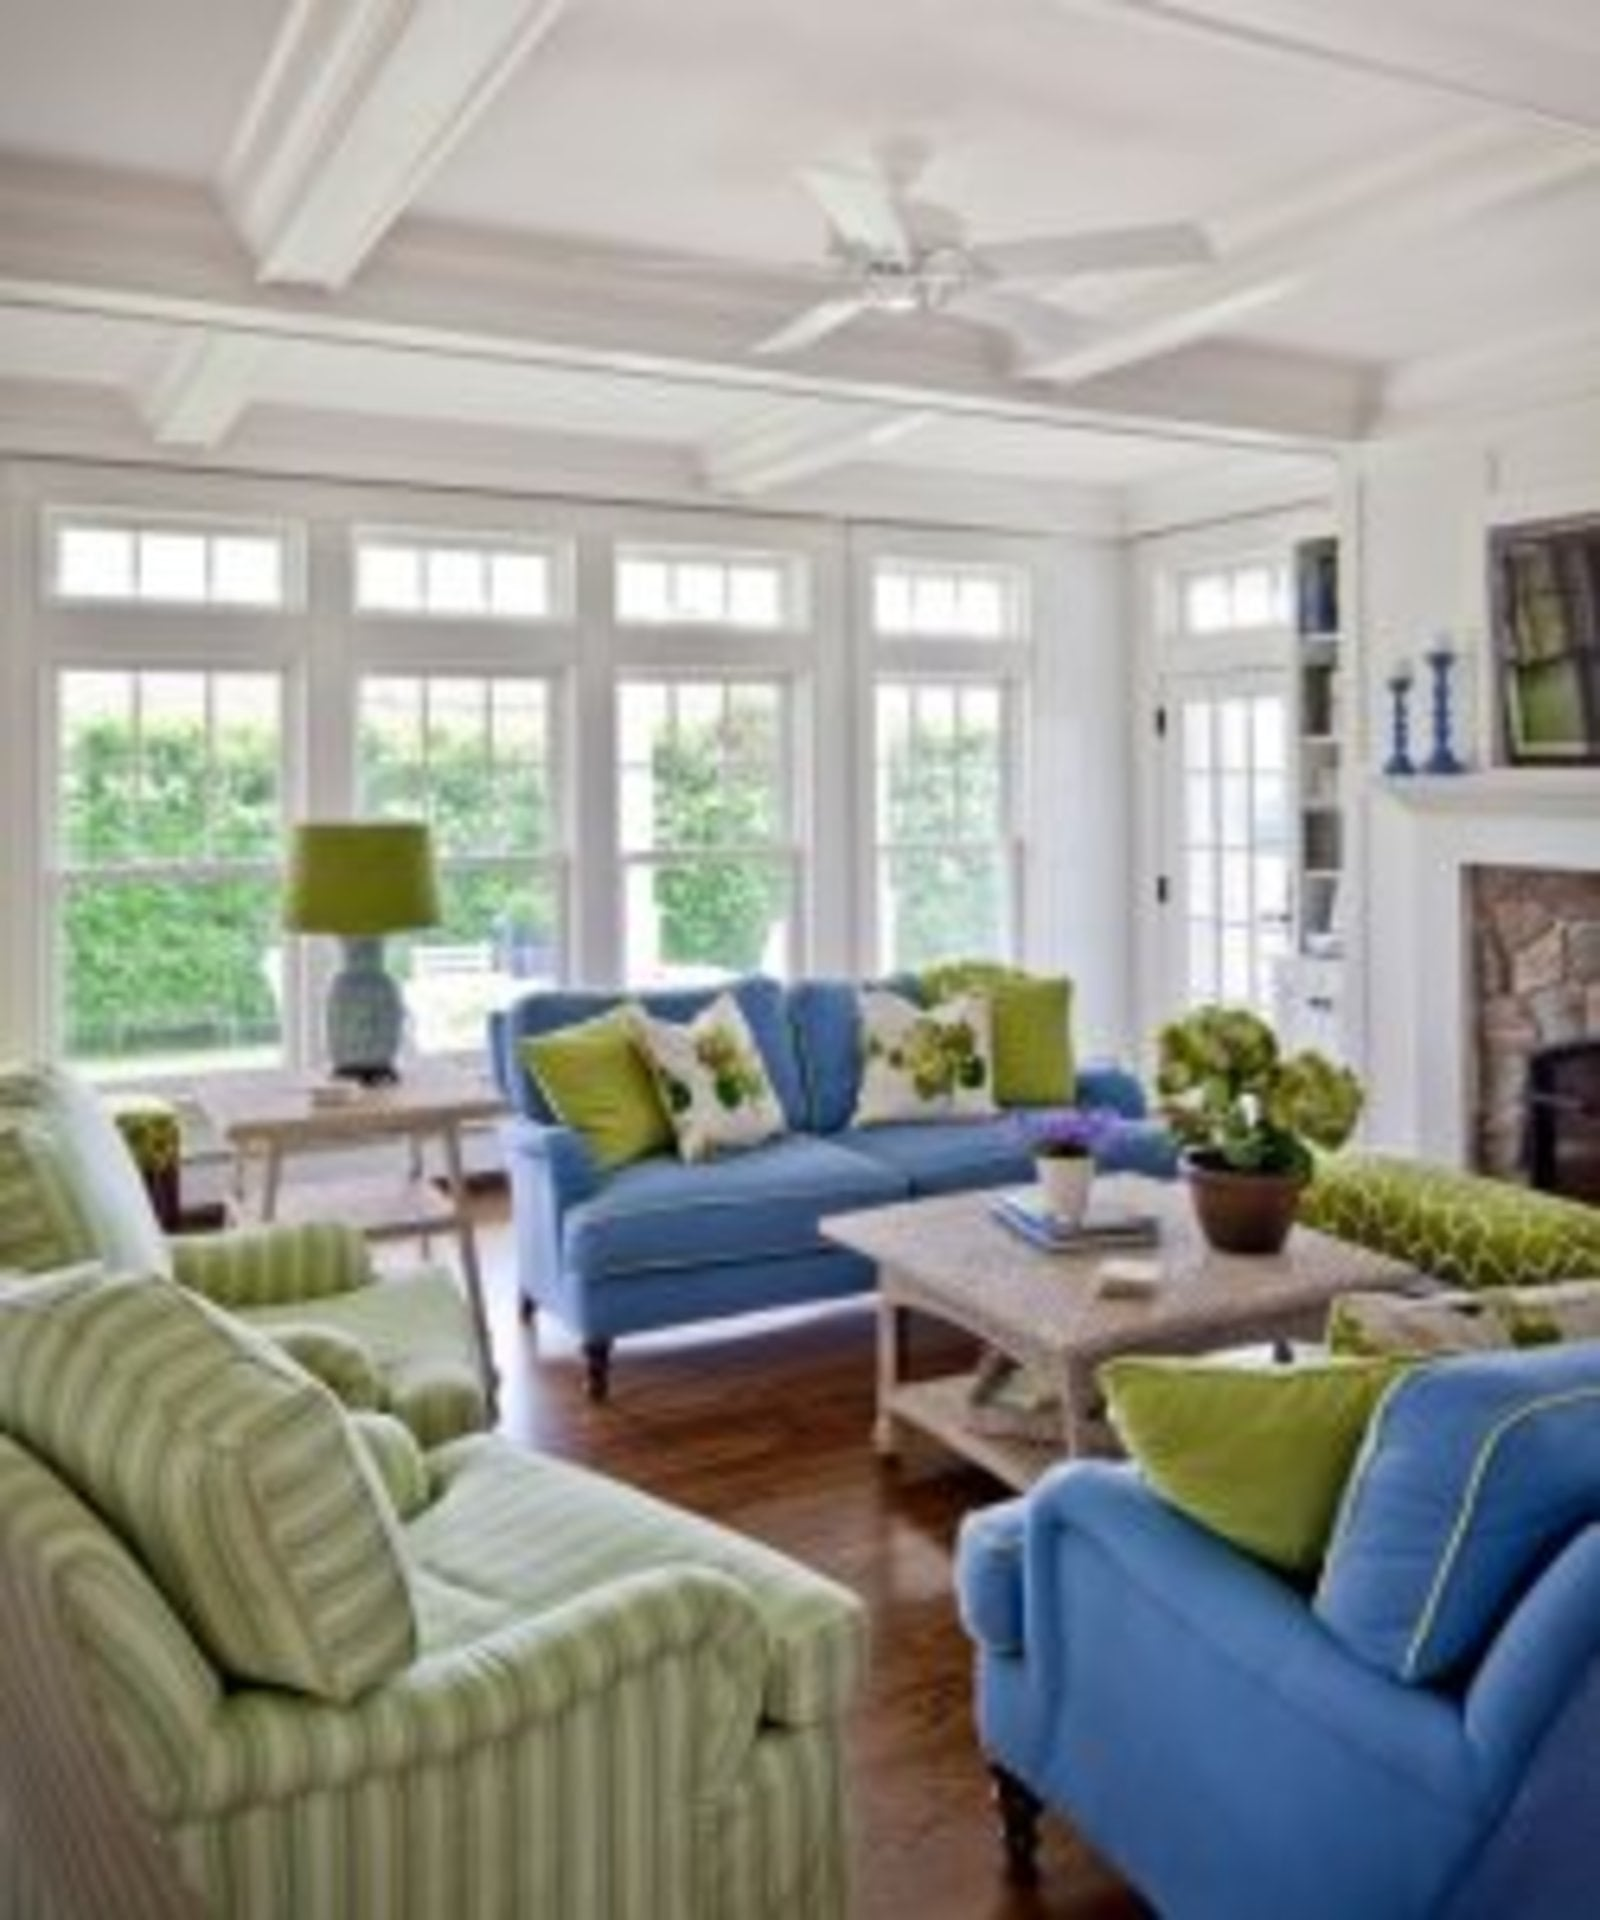 Decorating with Green - Cottage at the Beach